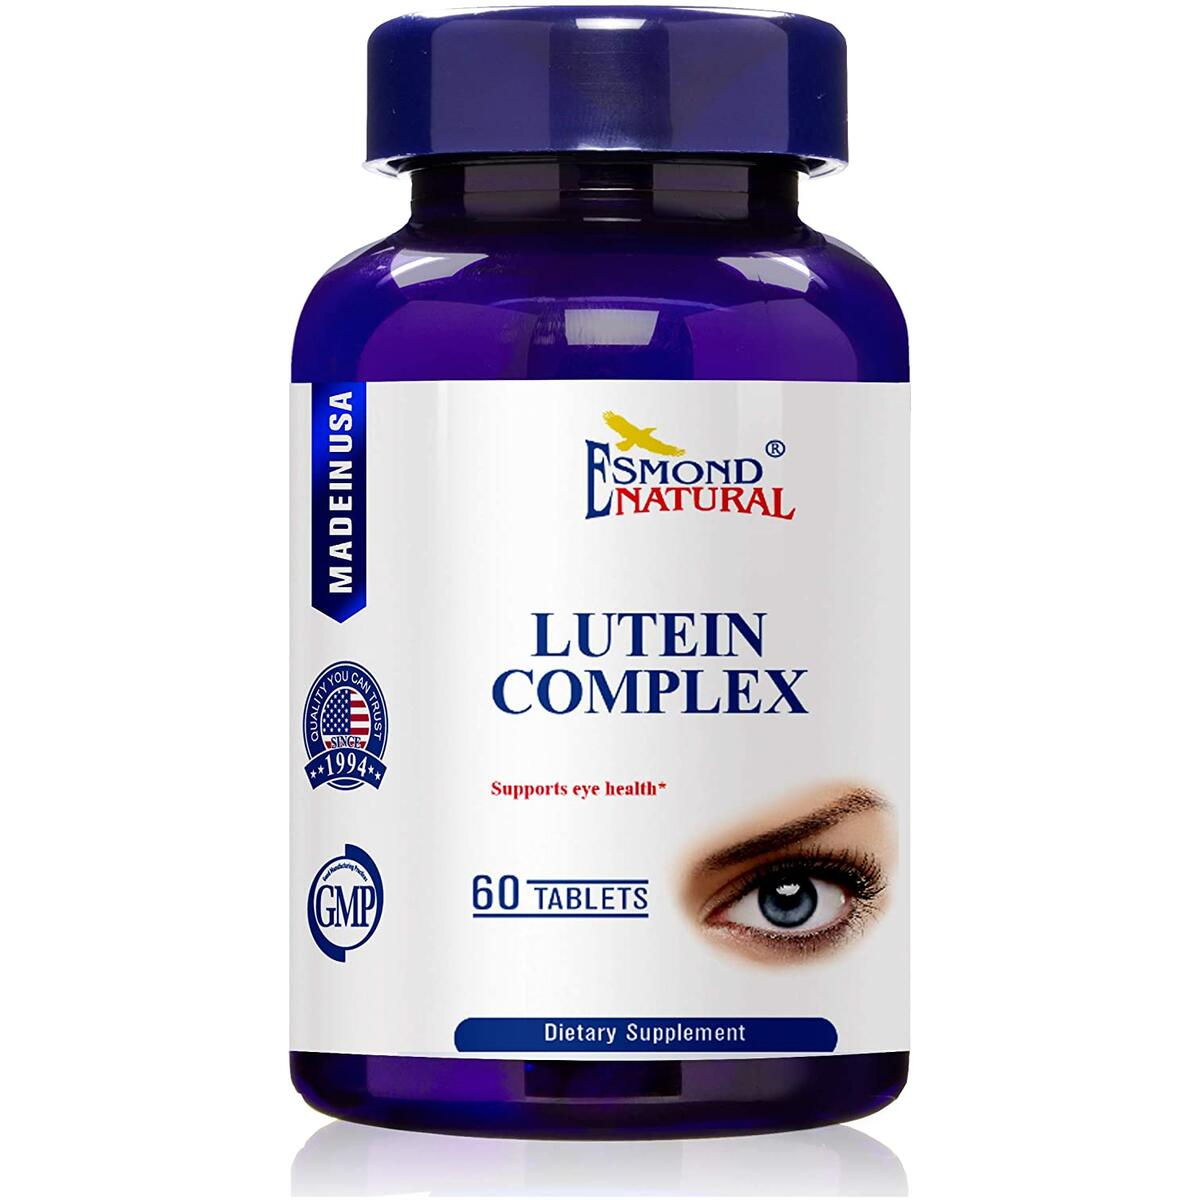 (5 Count, 25% Off) Esmond Natural: Lutein Complex (Supports Eye Health), GMP, Natural Product Assn Certified, Made in USA-300 Tablets